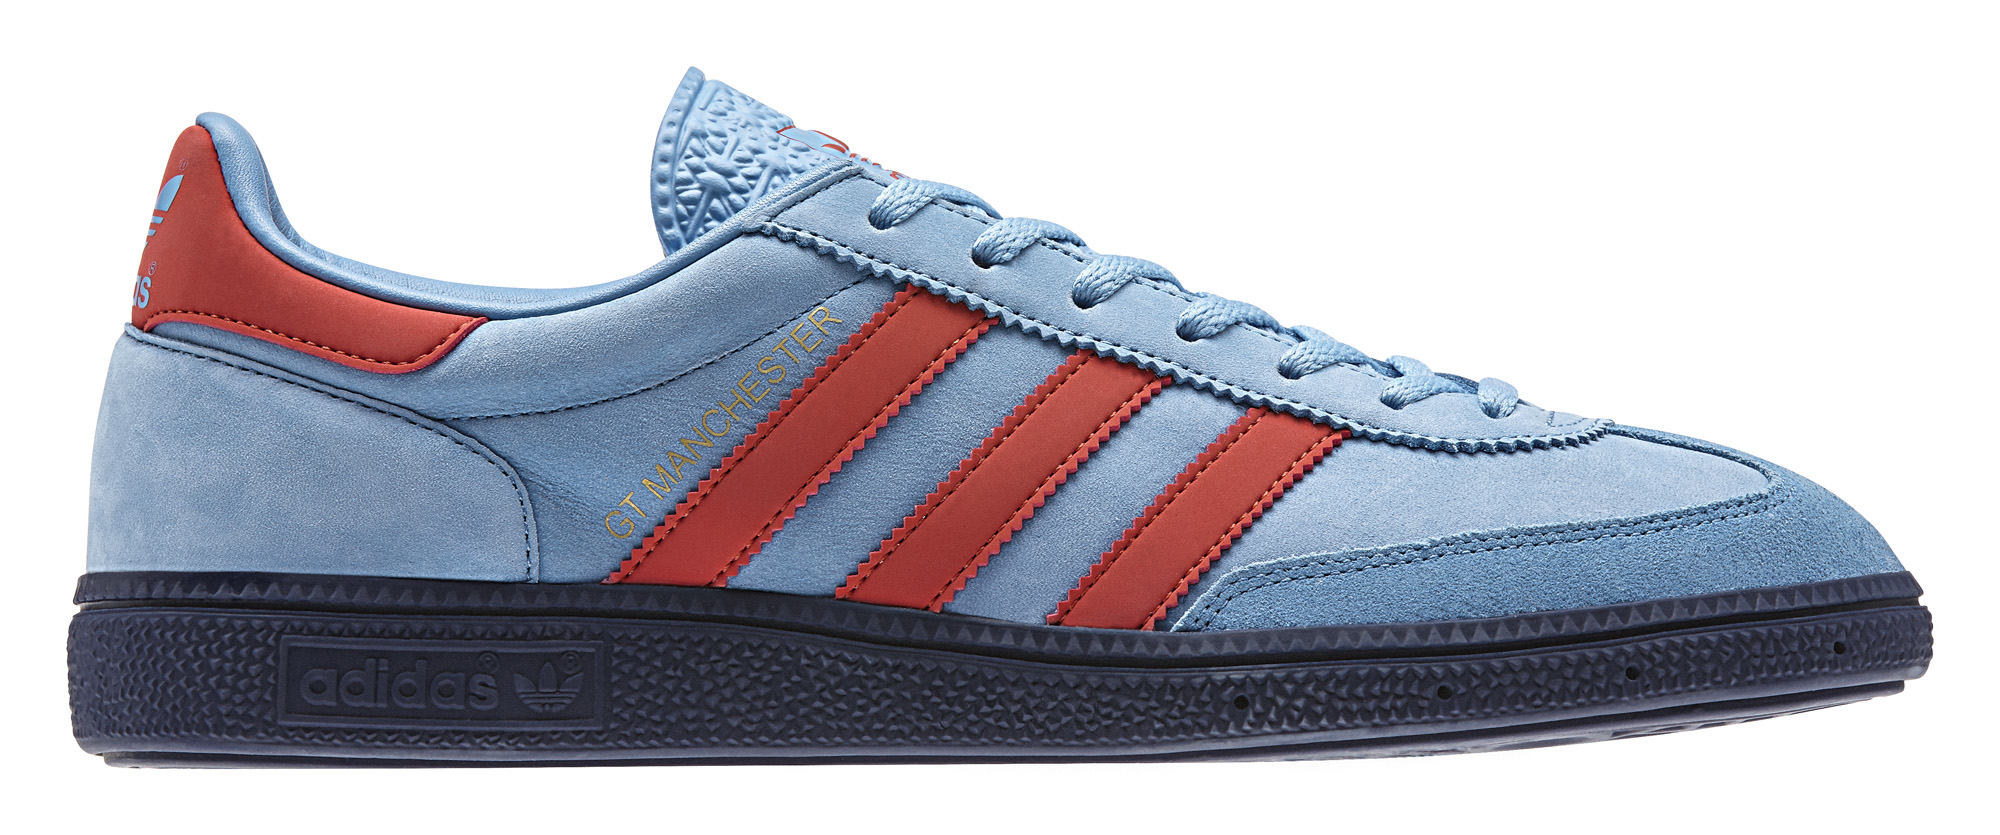 adidas-spezial-collection-fall-winter-2016-02